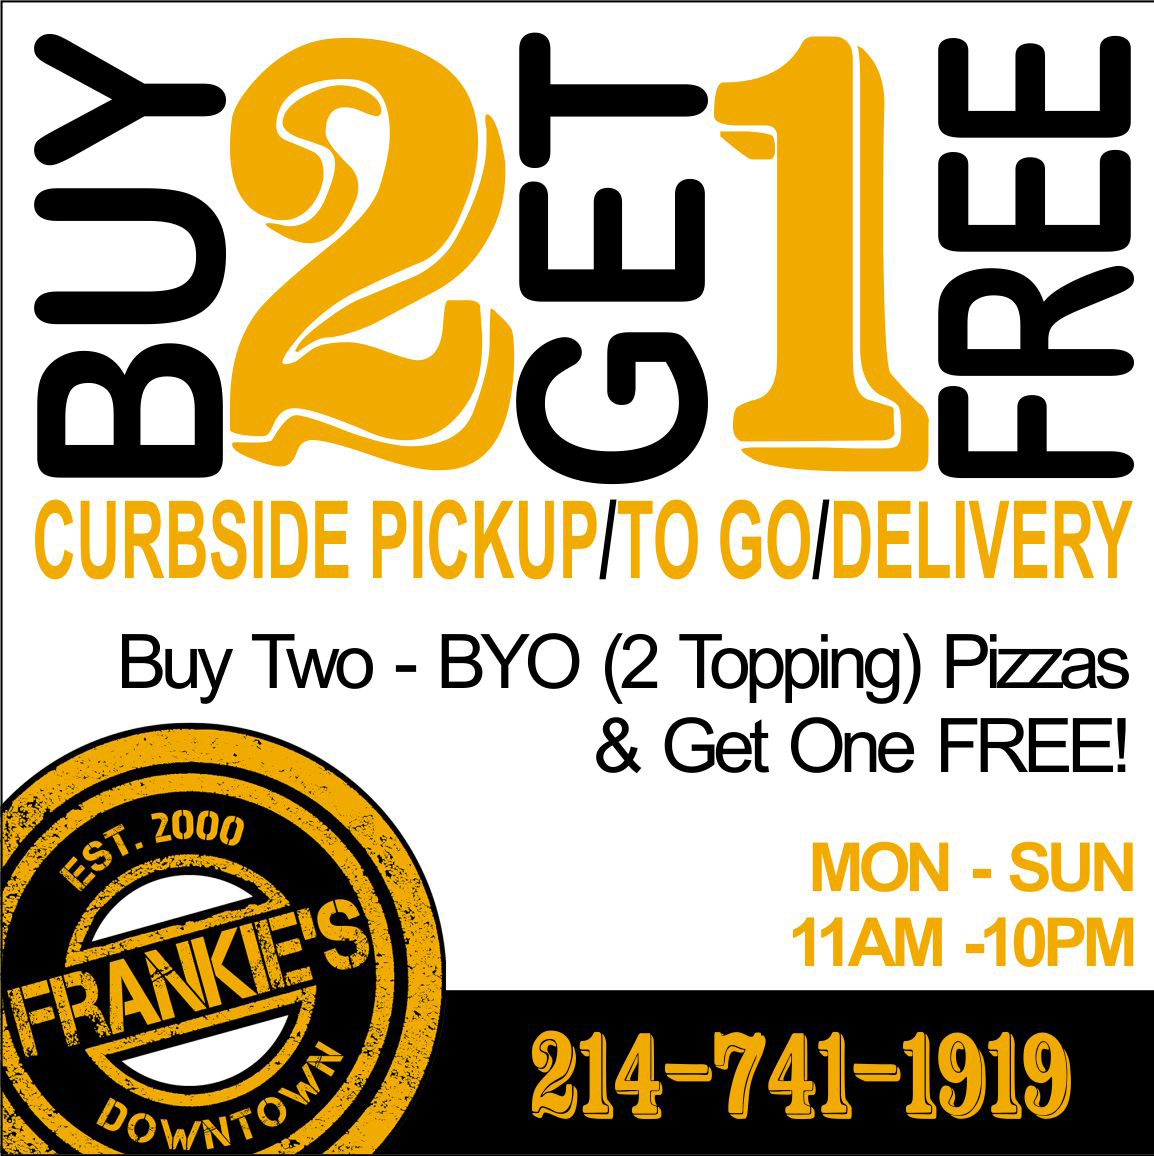 Frankie's - Downtown - Dallas - Alcohol - Food - Delivery - Free - To Go - Curbside - Pick Up